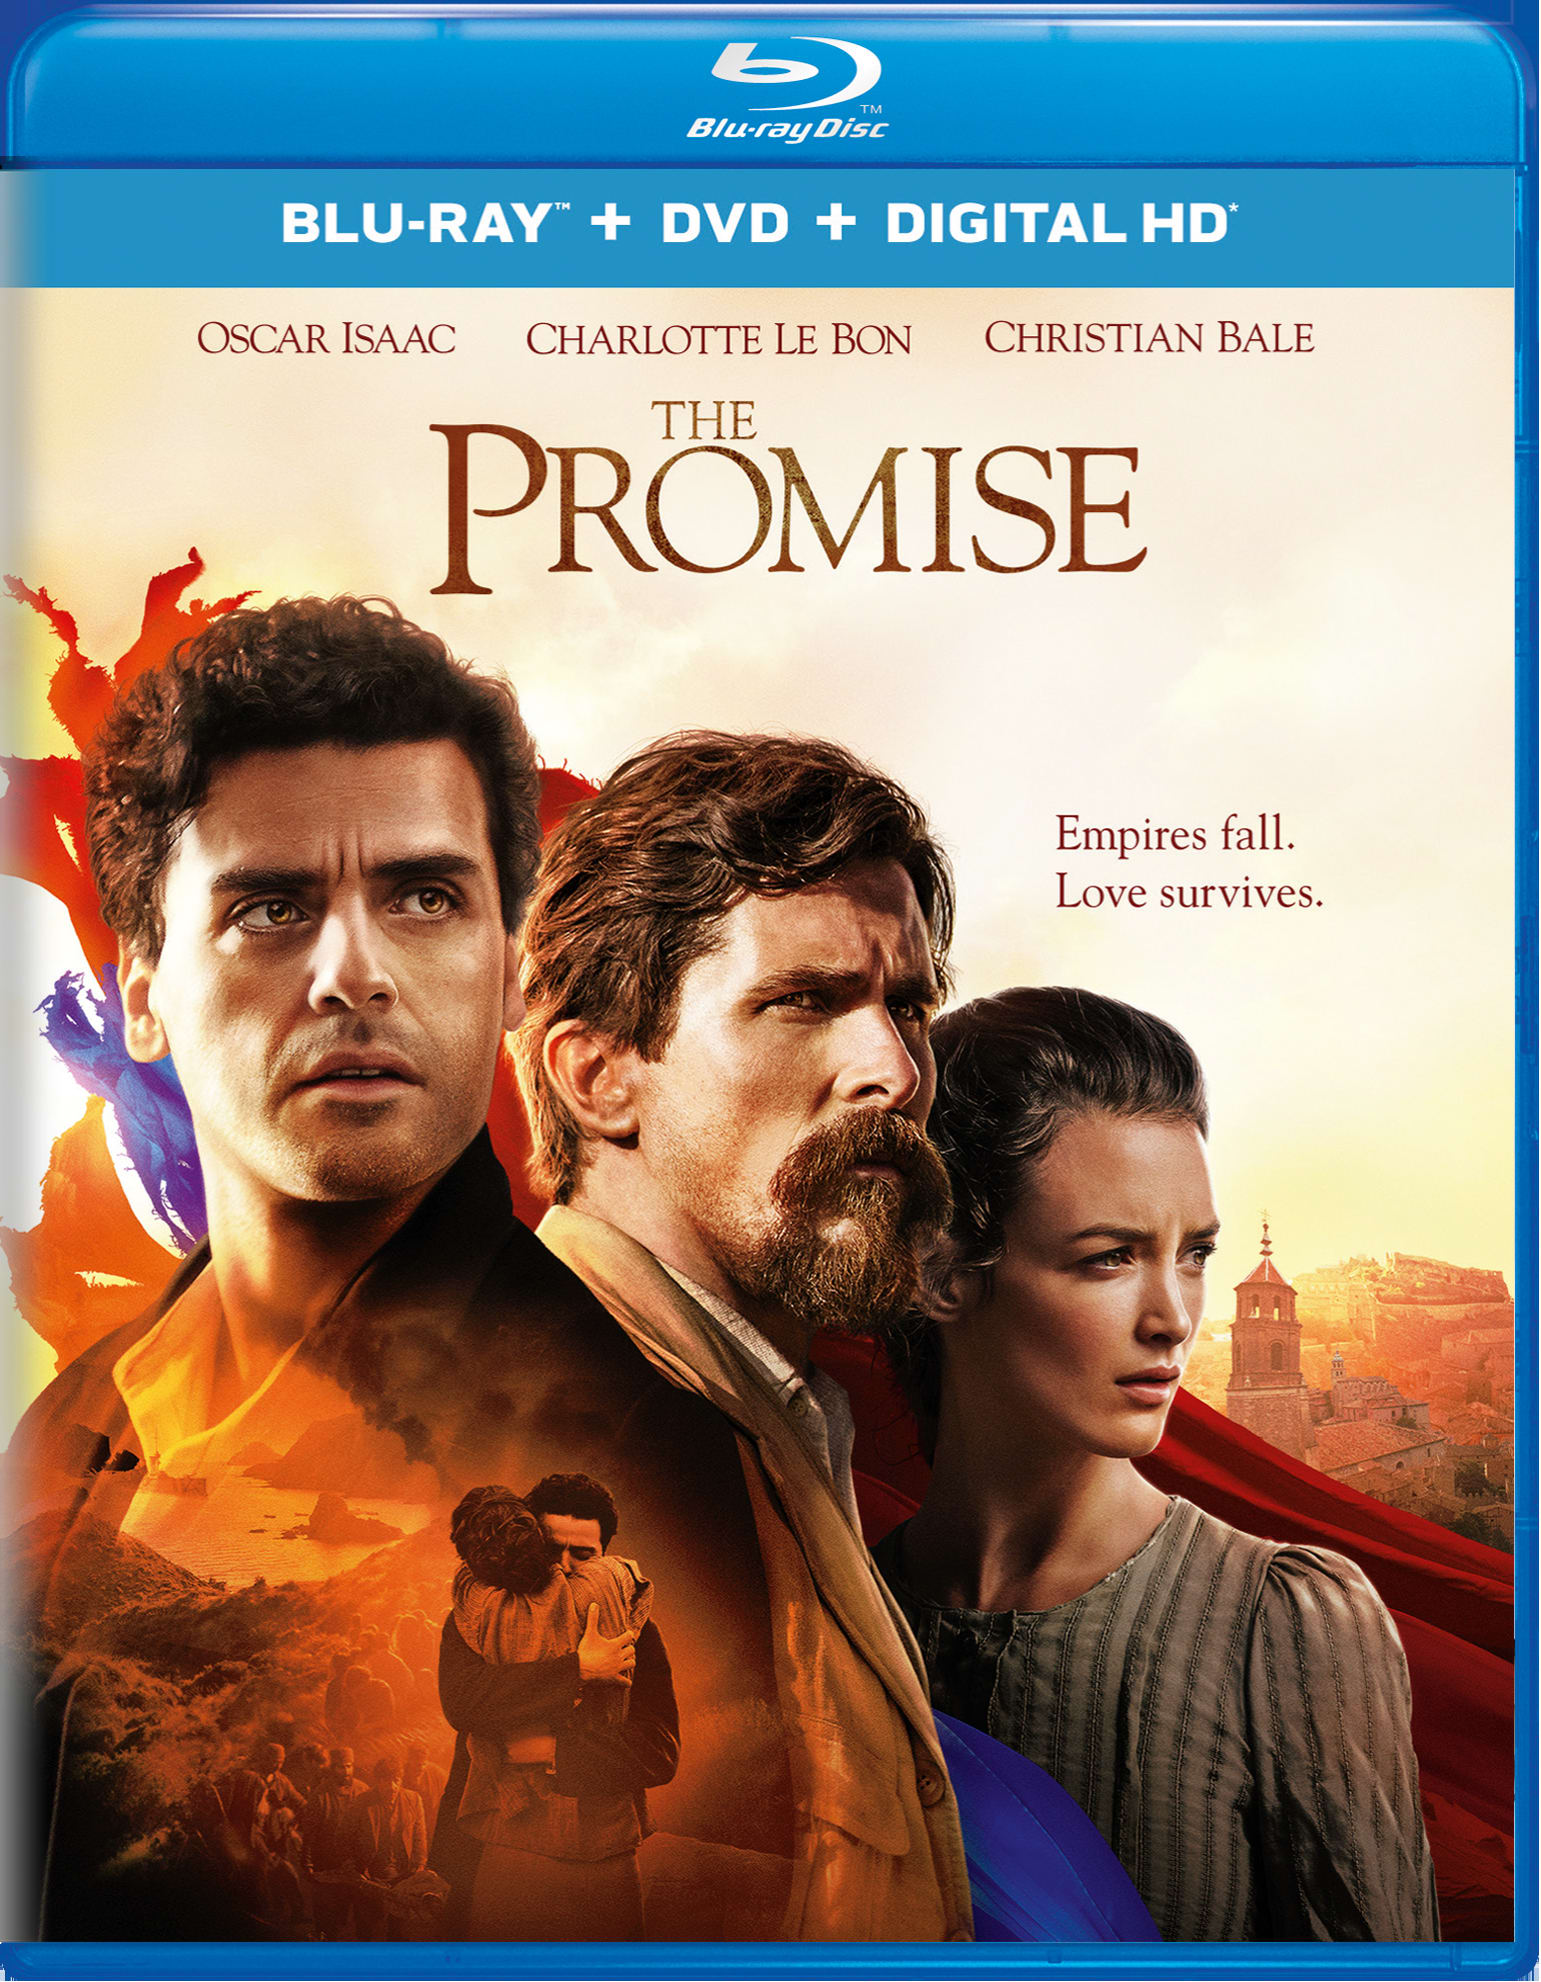 The Promise (2017) (DVD + Digital) [Blu-ray]